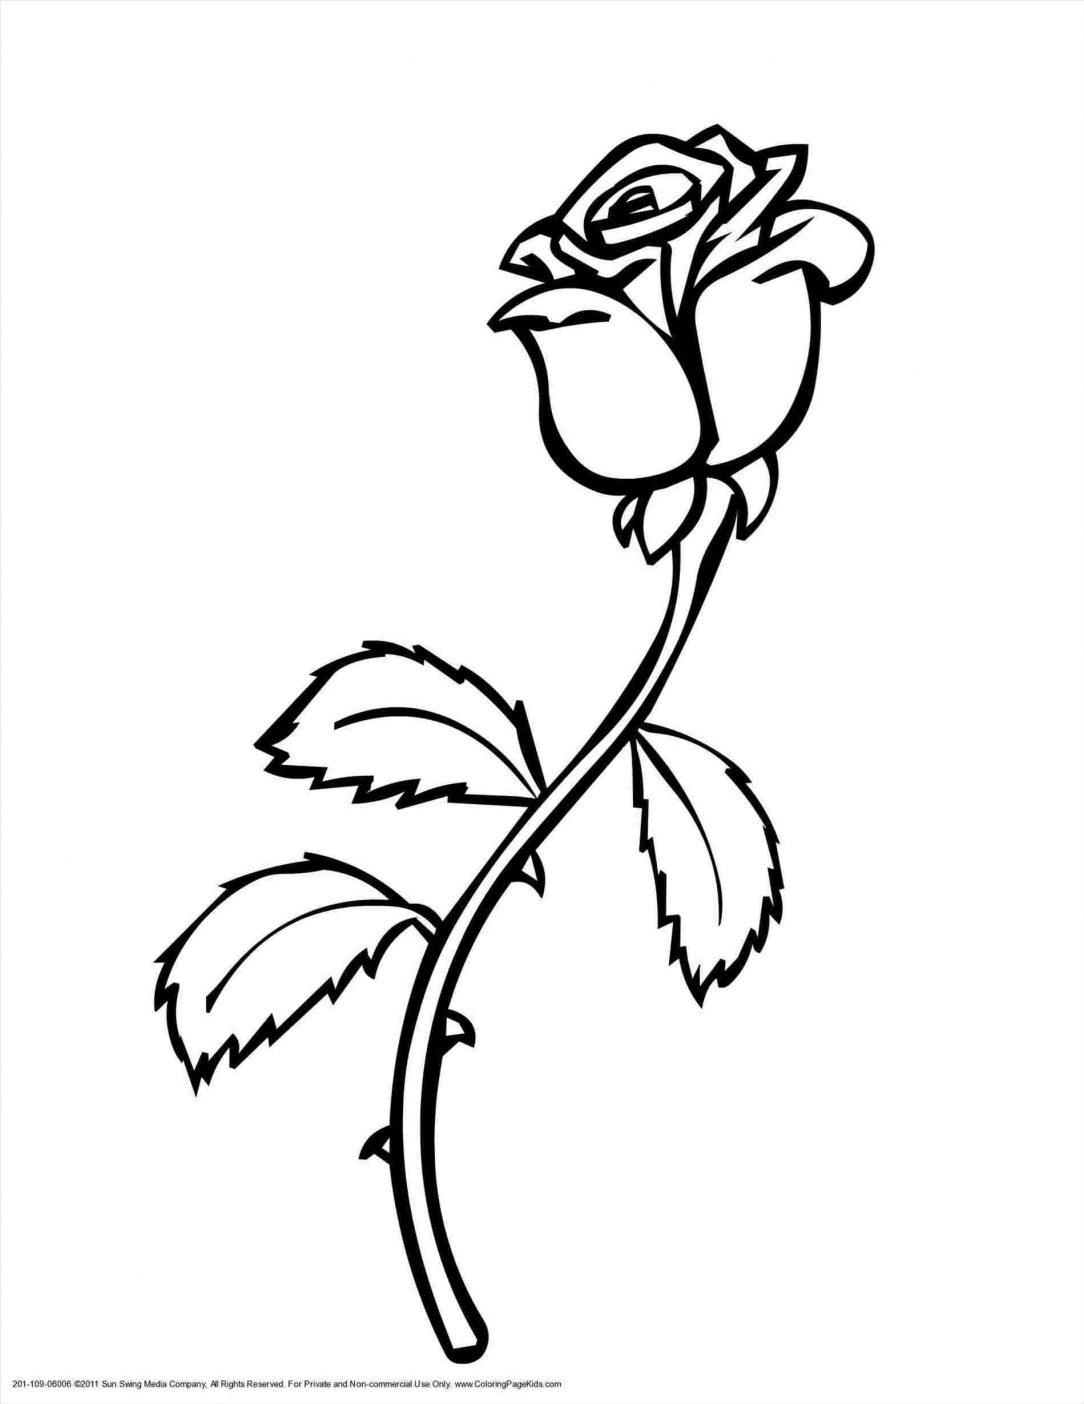 1084x1404 Black And White Drawing Of A Rose Flowers Border Skull Line Vector